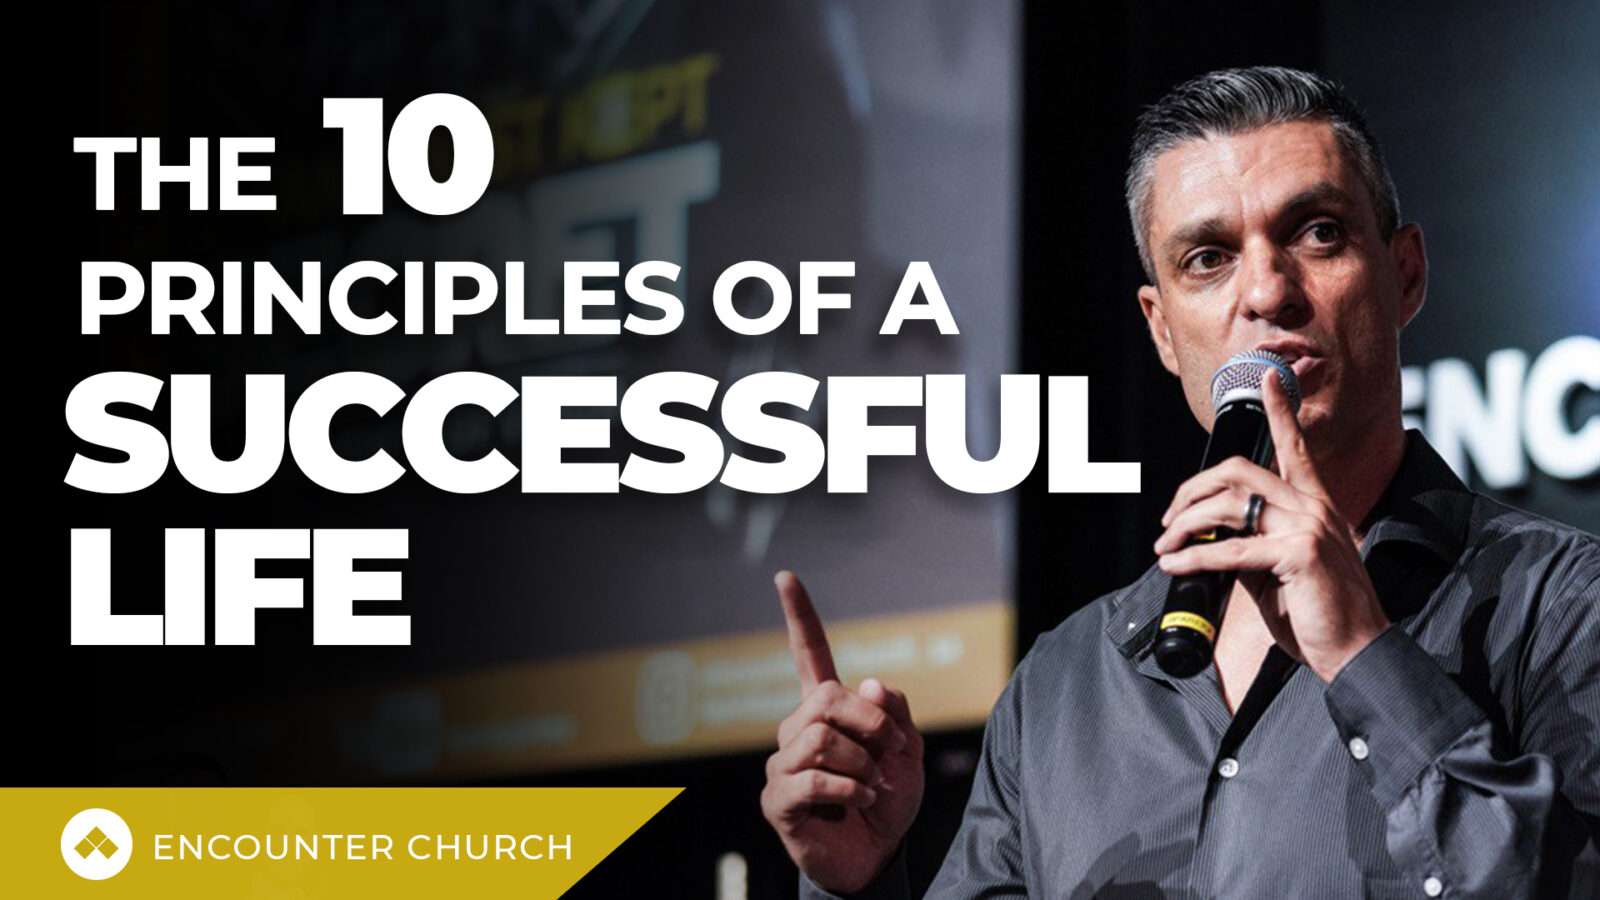 The 10 Principles of a Successful Life